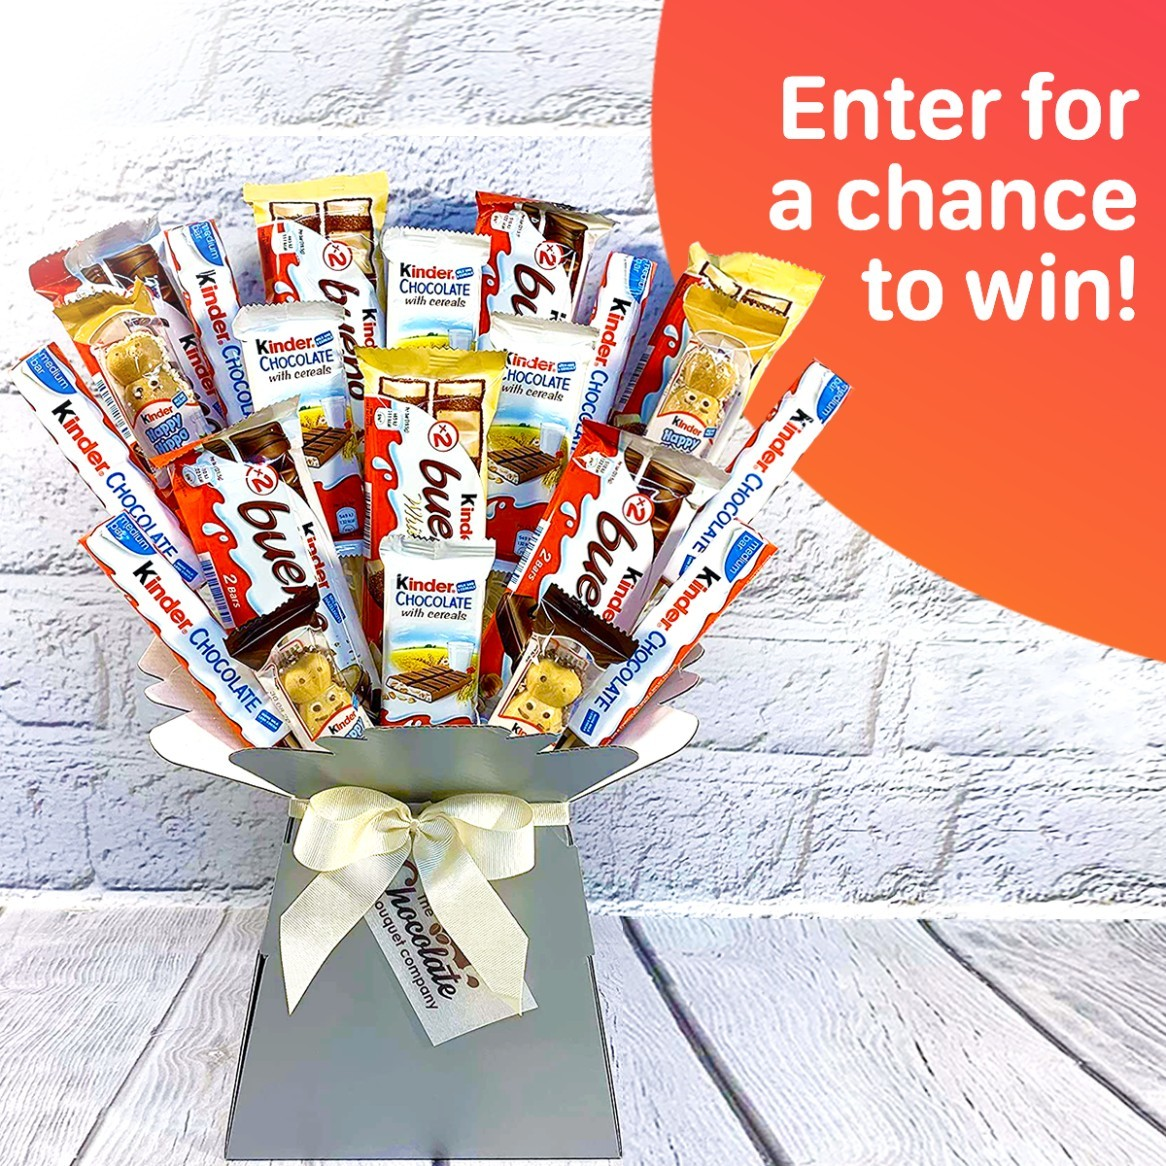 WIN the Kinder Chocolate Bouquet containing a whopping 21 bars of Kinder chocolate!